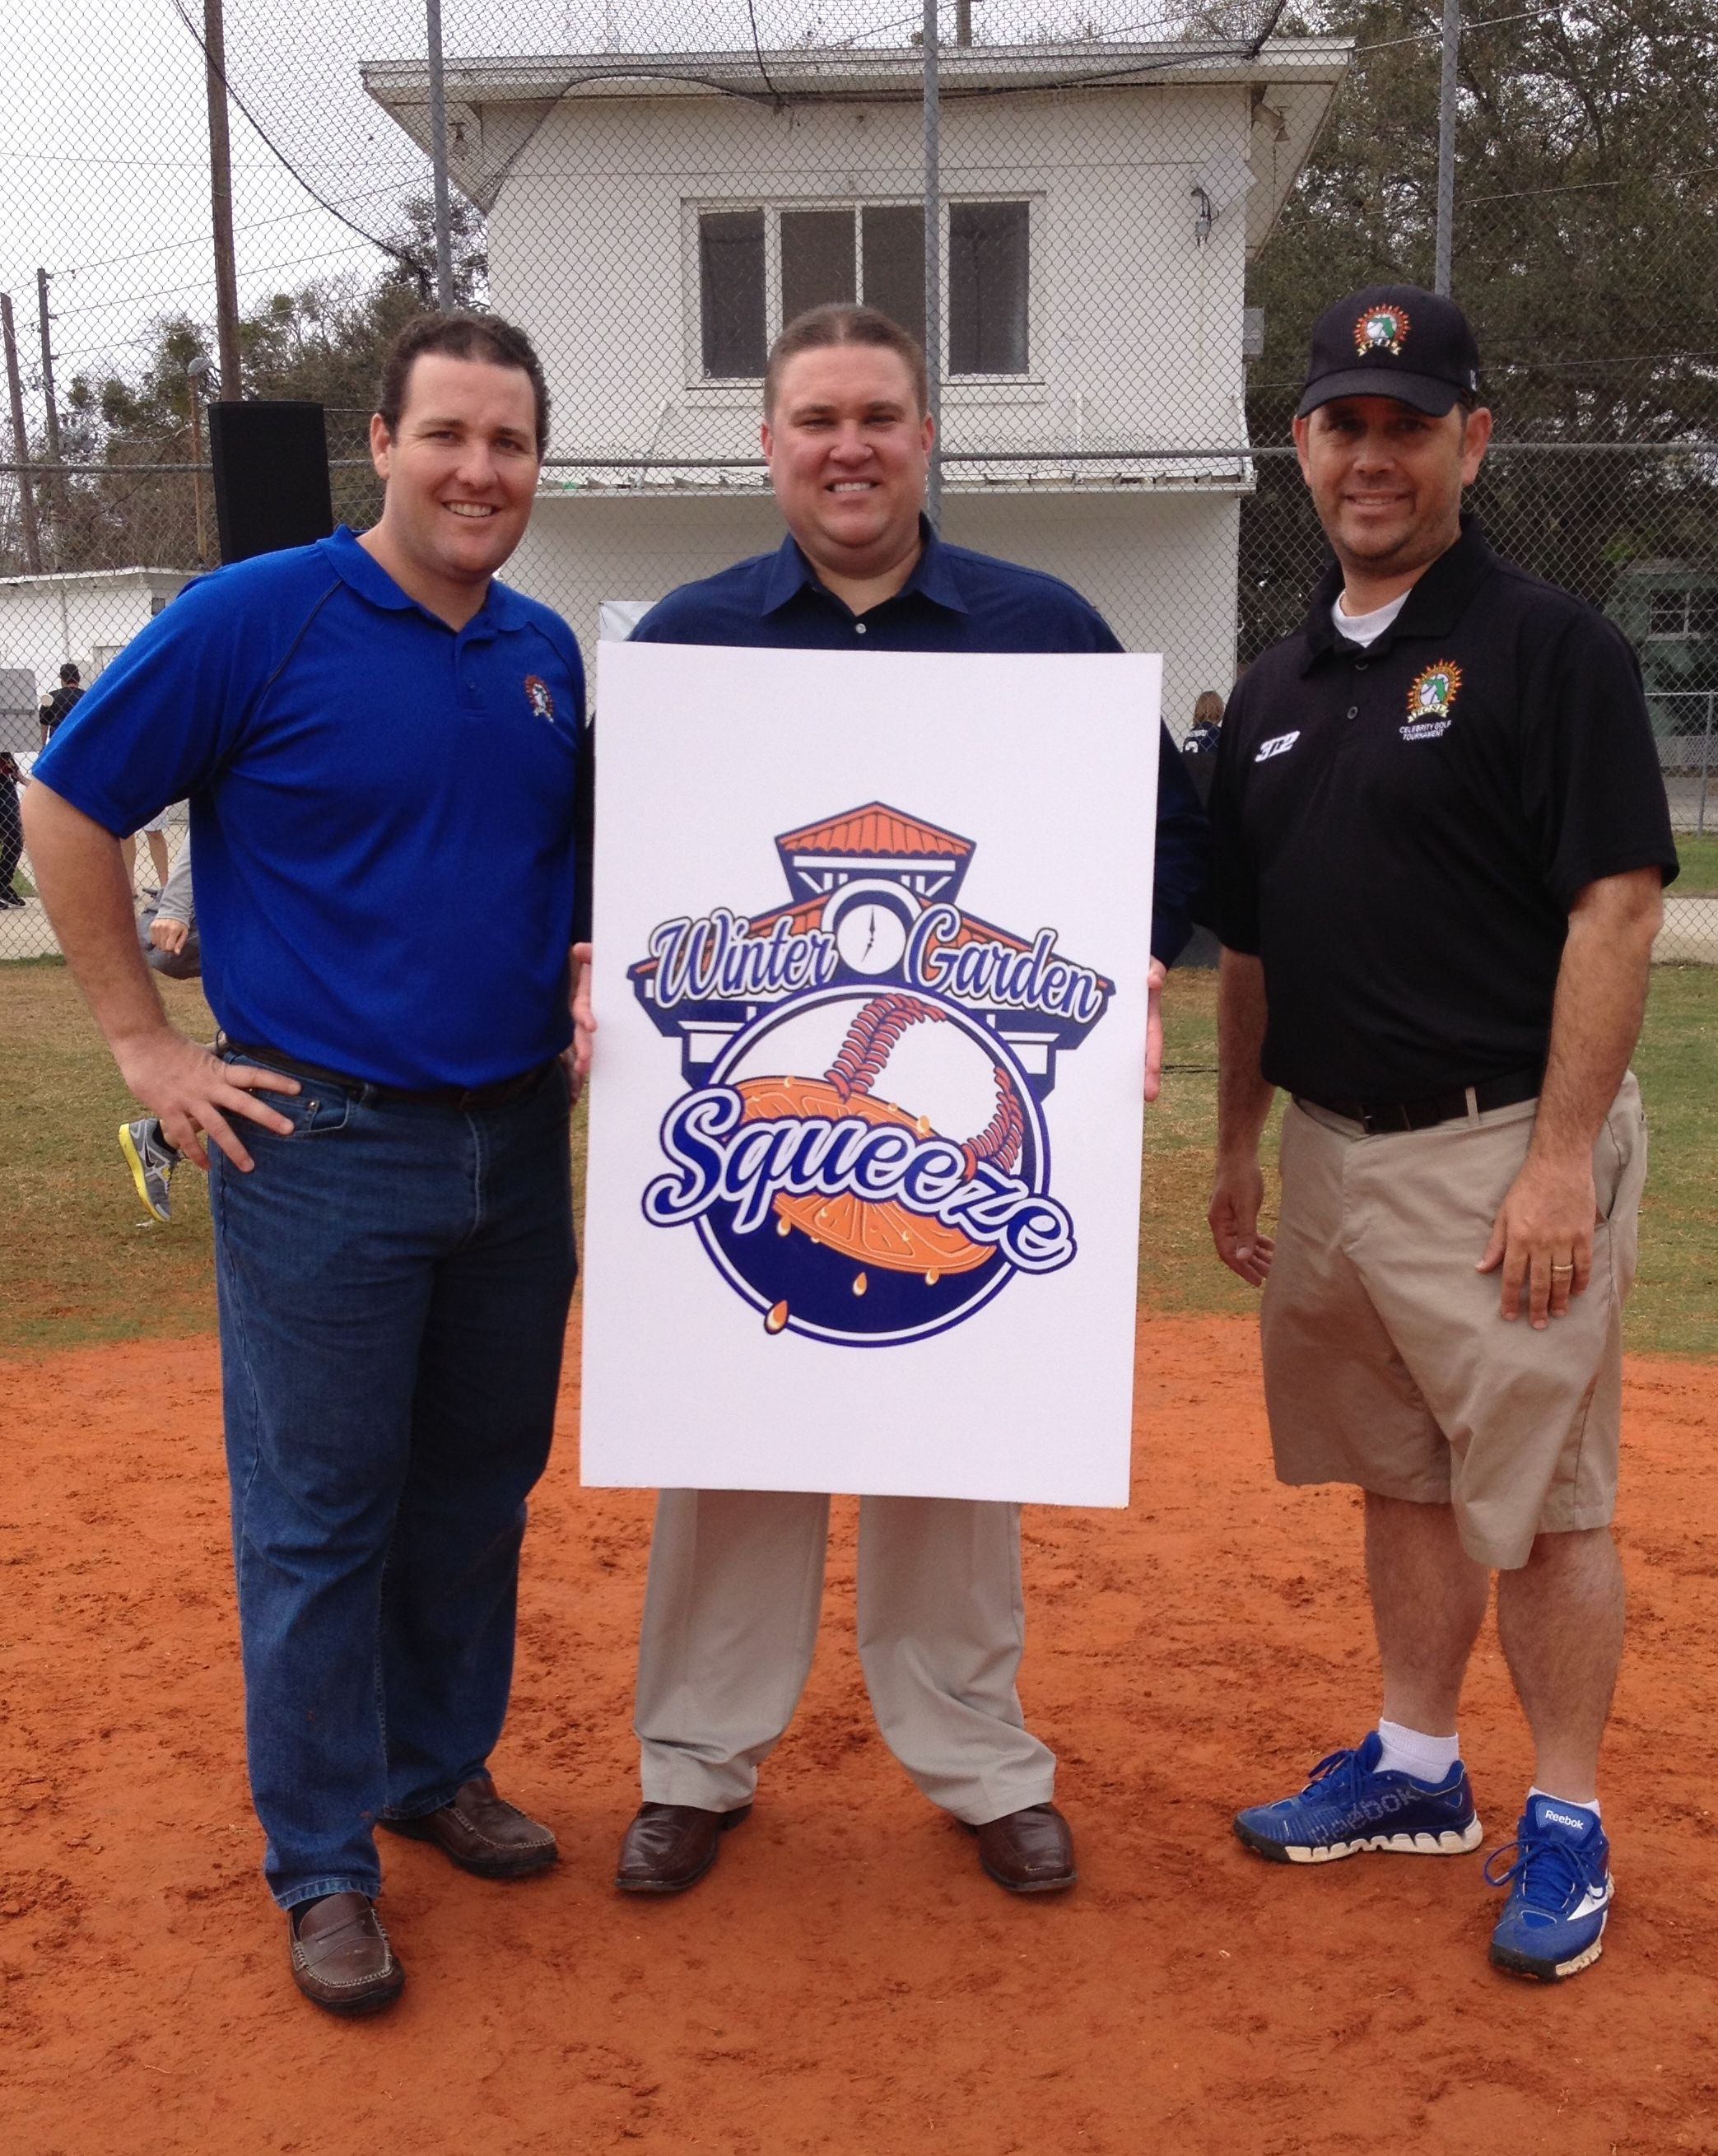 Officials Of The Florida Collegiate Summer League Announced A New Baseball Franchise For The City Of Winter Garden Winter Baseball League Wood Bat West Orange